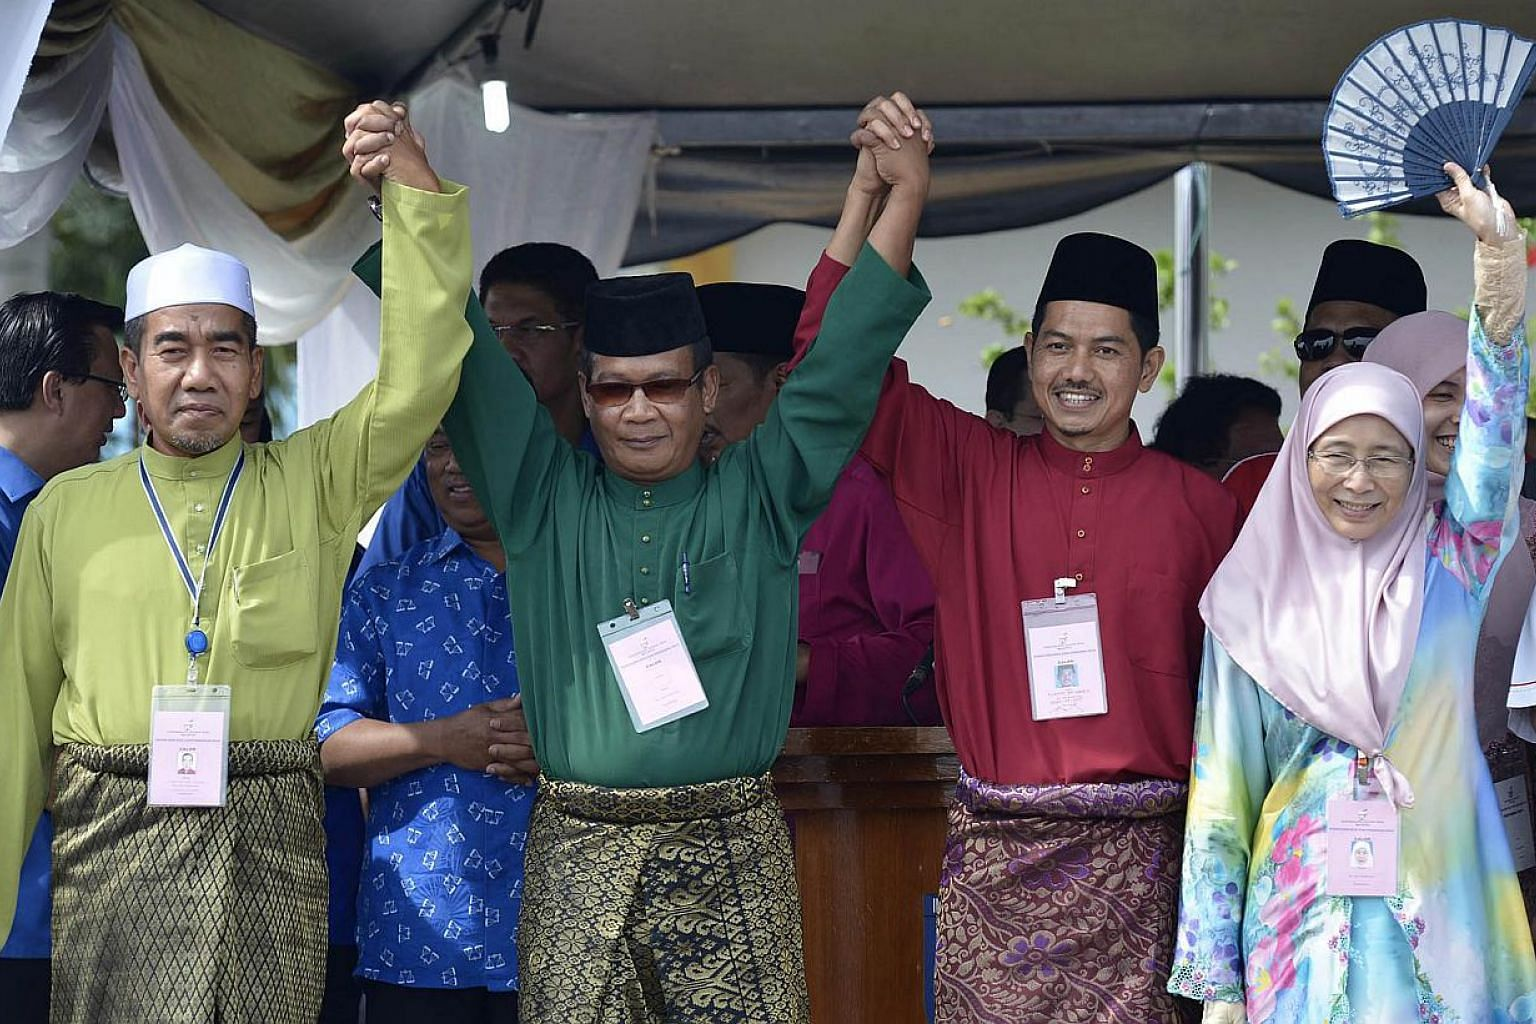 The Permatang Pauh by-election on May 7 will be a four cornered fight among (from left) independent candidate Salleh Ishak, Parti Rakyat Malaysia's (PRM) Azman Shah Othman, Barisan Nasional's (BN) Suhaimi Sabudin and Parti Keadilan Rakyat's (PK